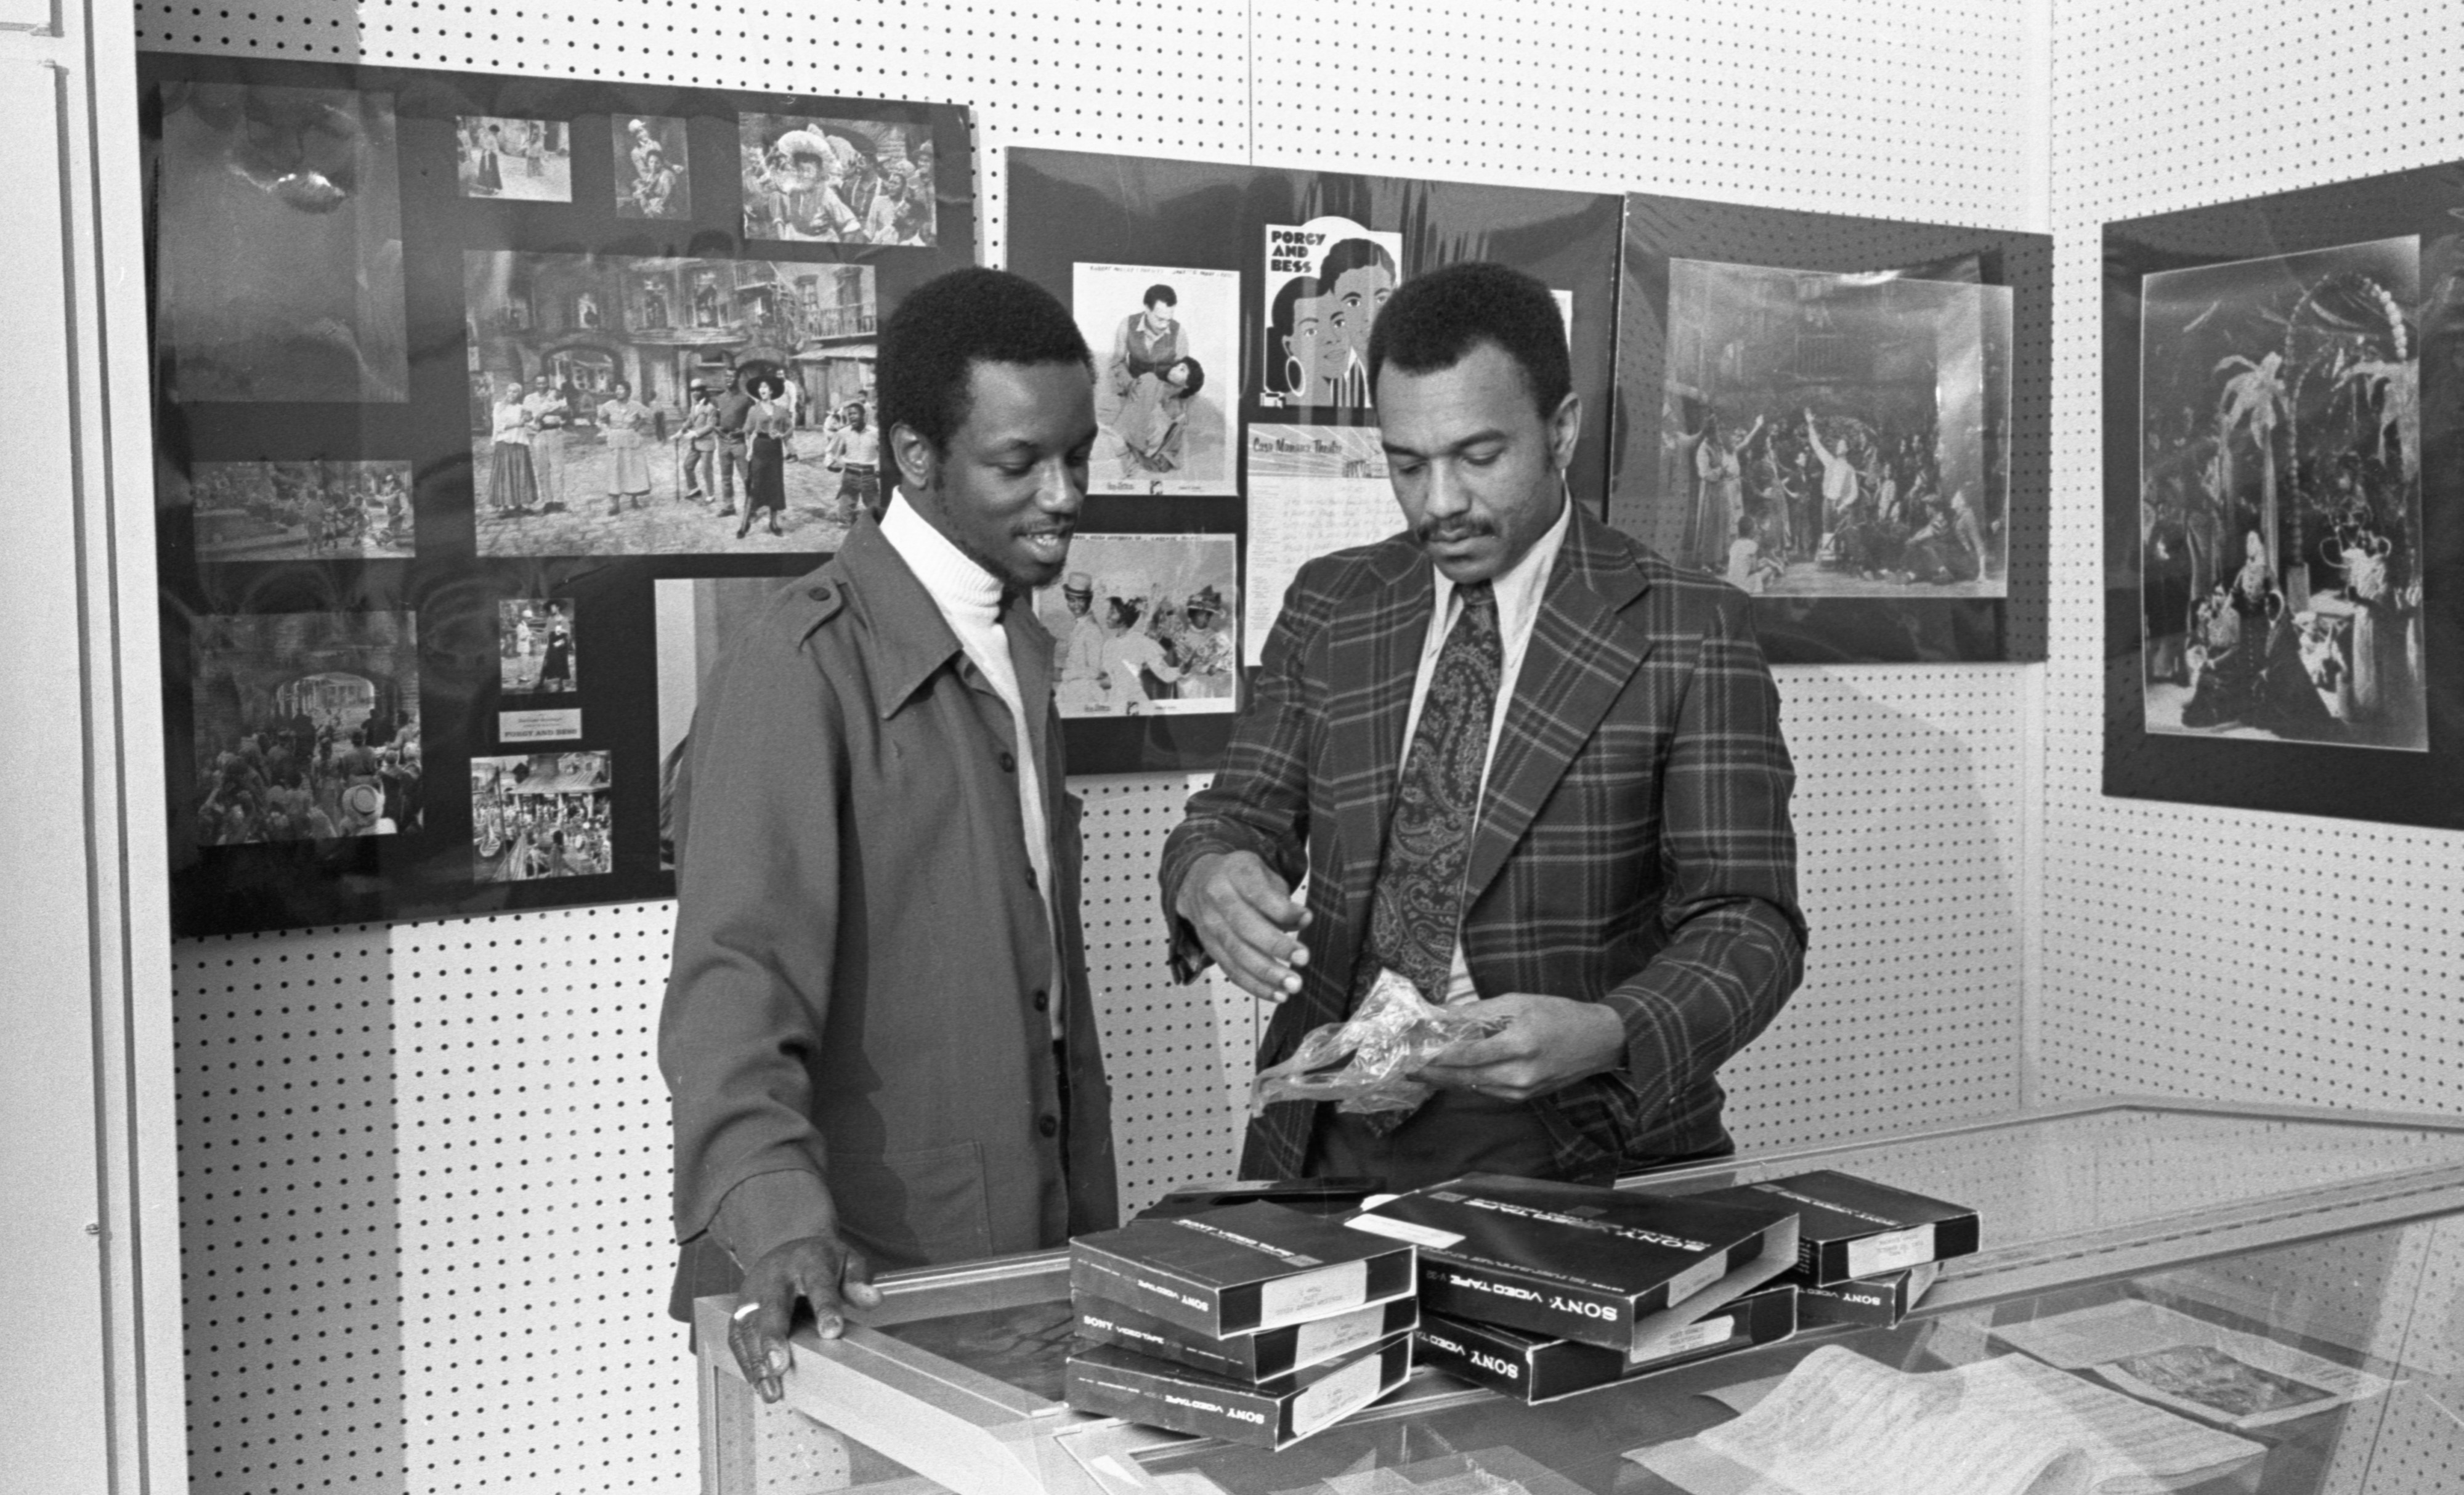 George Young & Jim Standifer With Eva Jessye Tapes In The University Of Michigan Afro-American Music Collection, December 1976 image